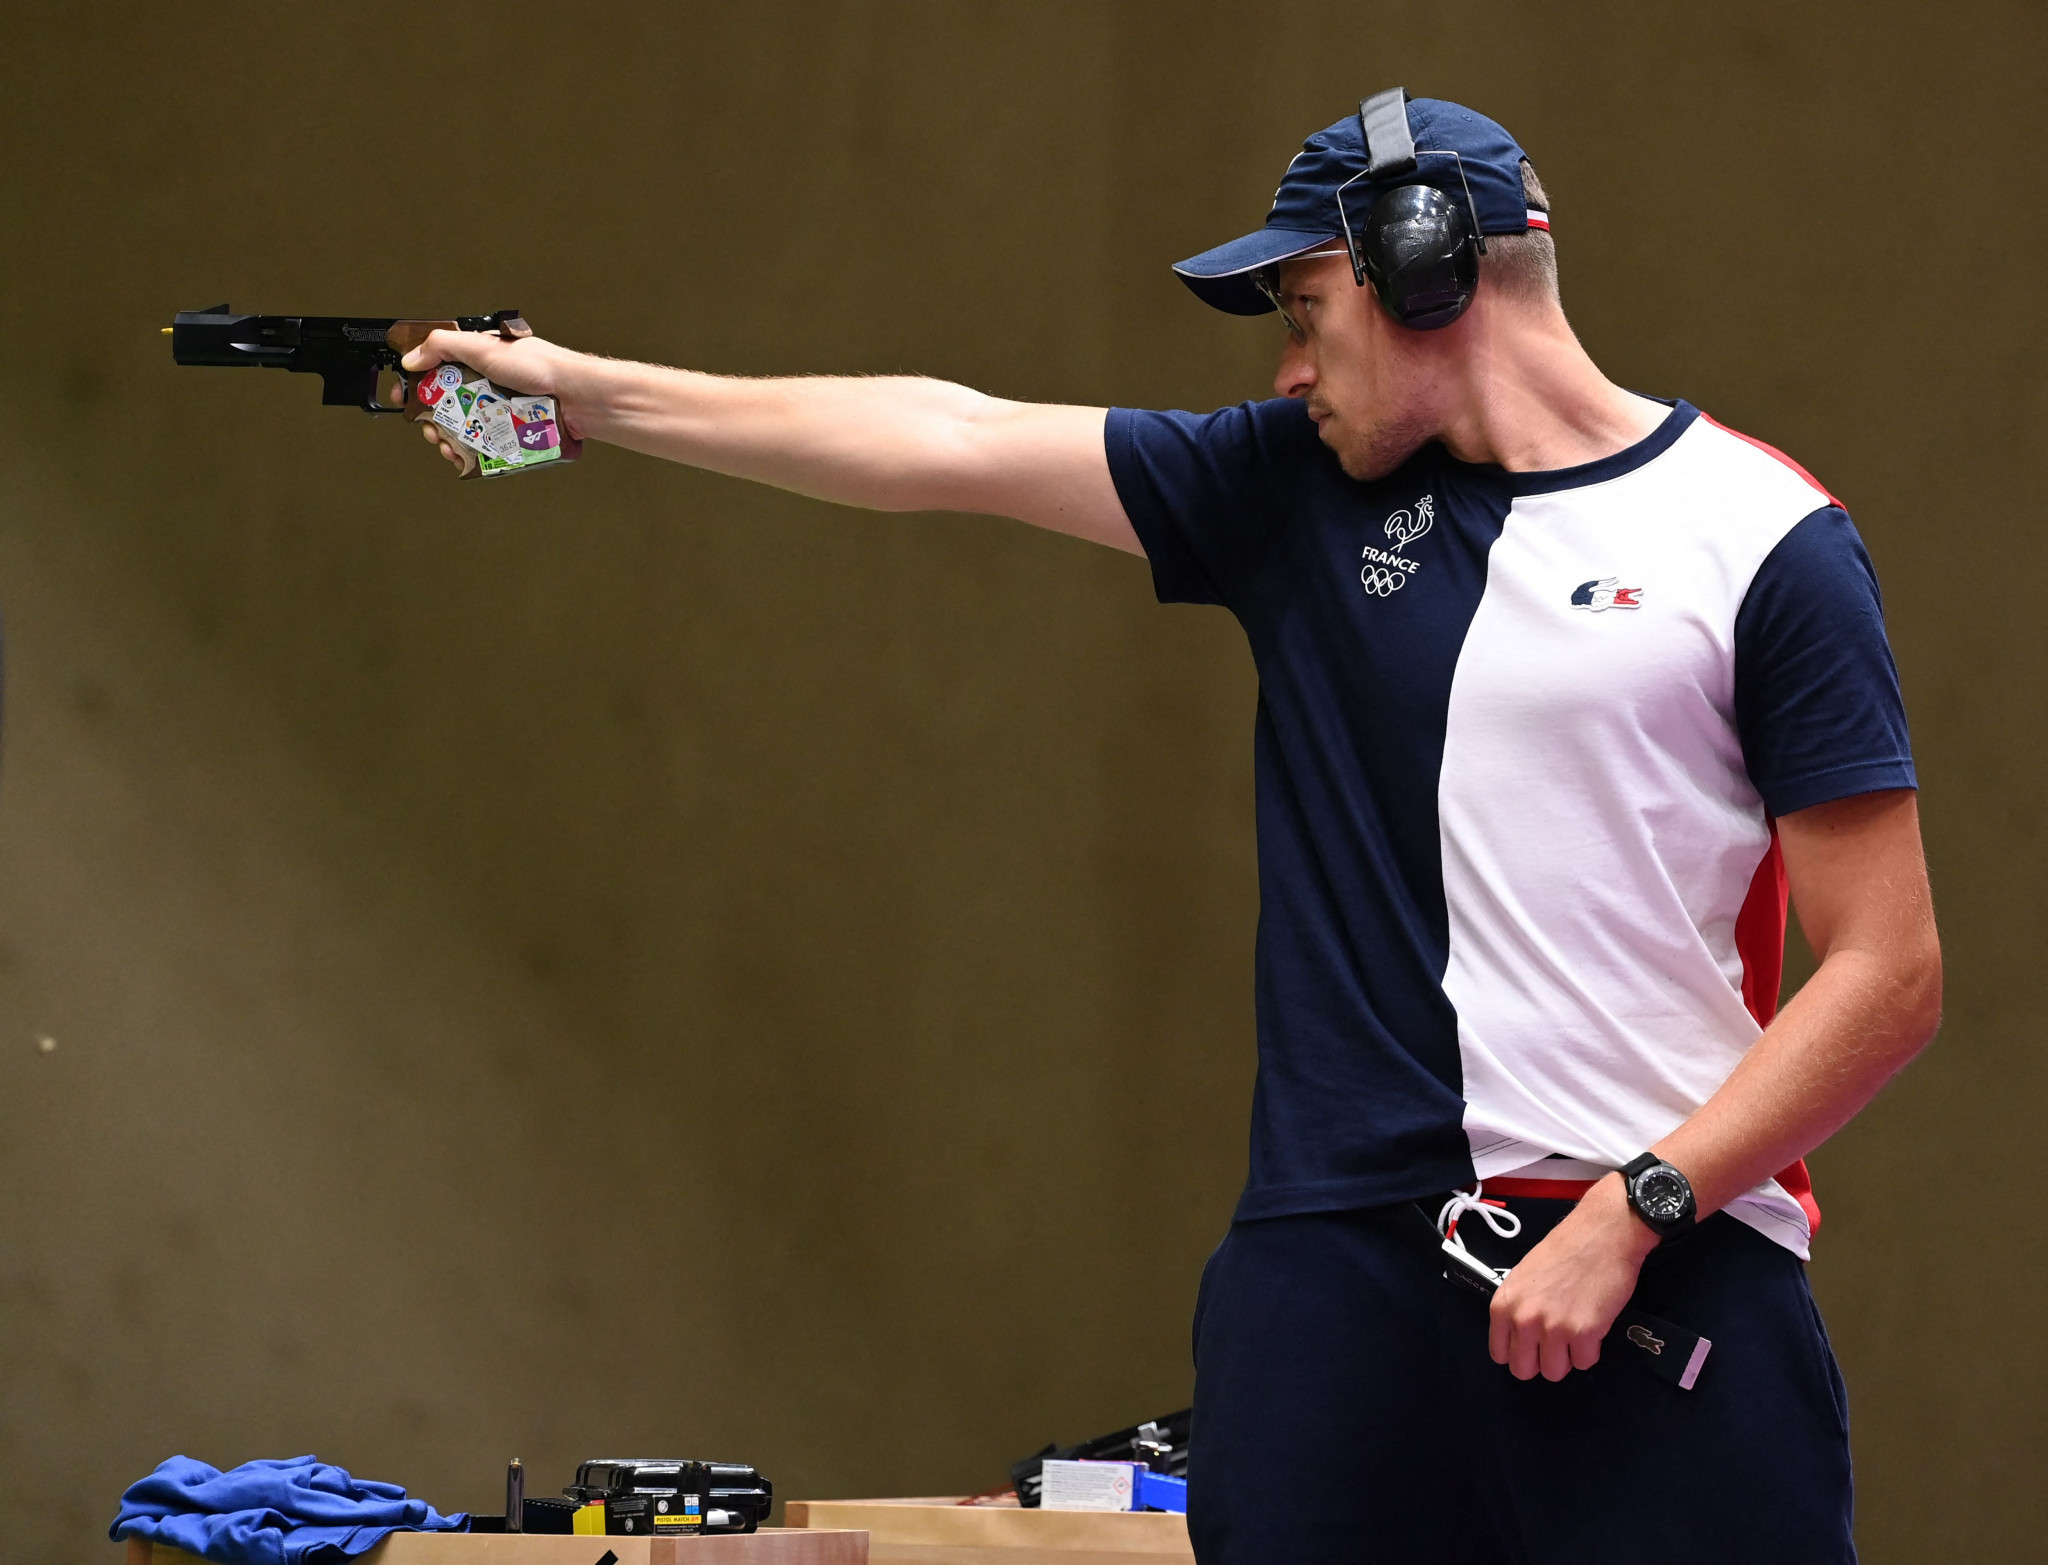 Quiquampoix upgrades from silver to gold in Tokyo 2020 men's 25m rapid fire pistol event